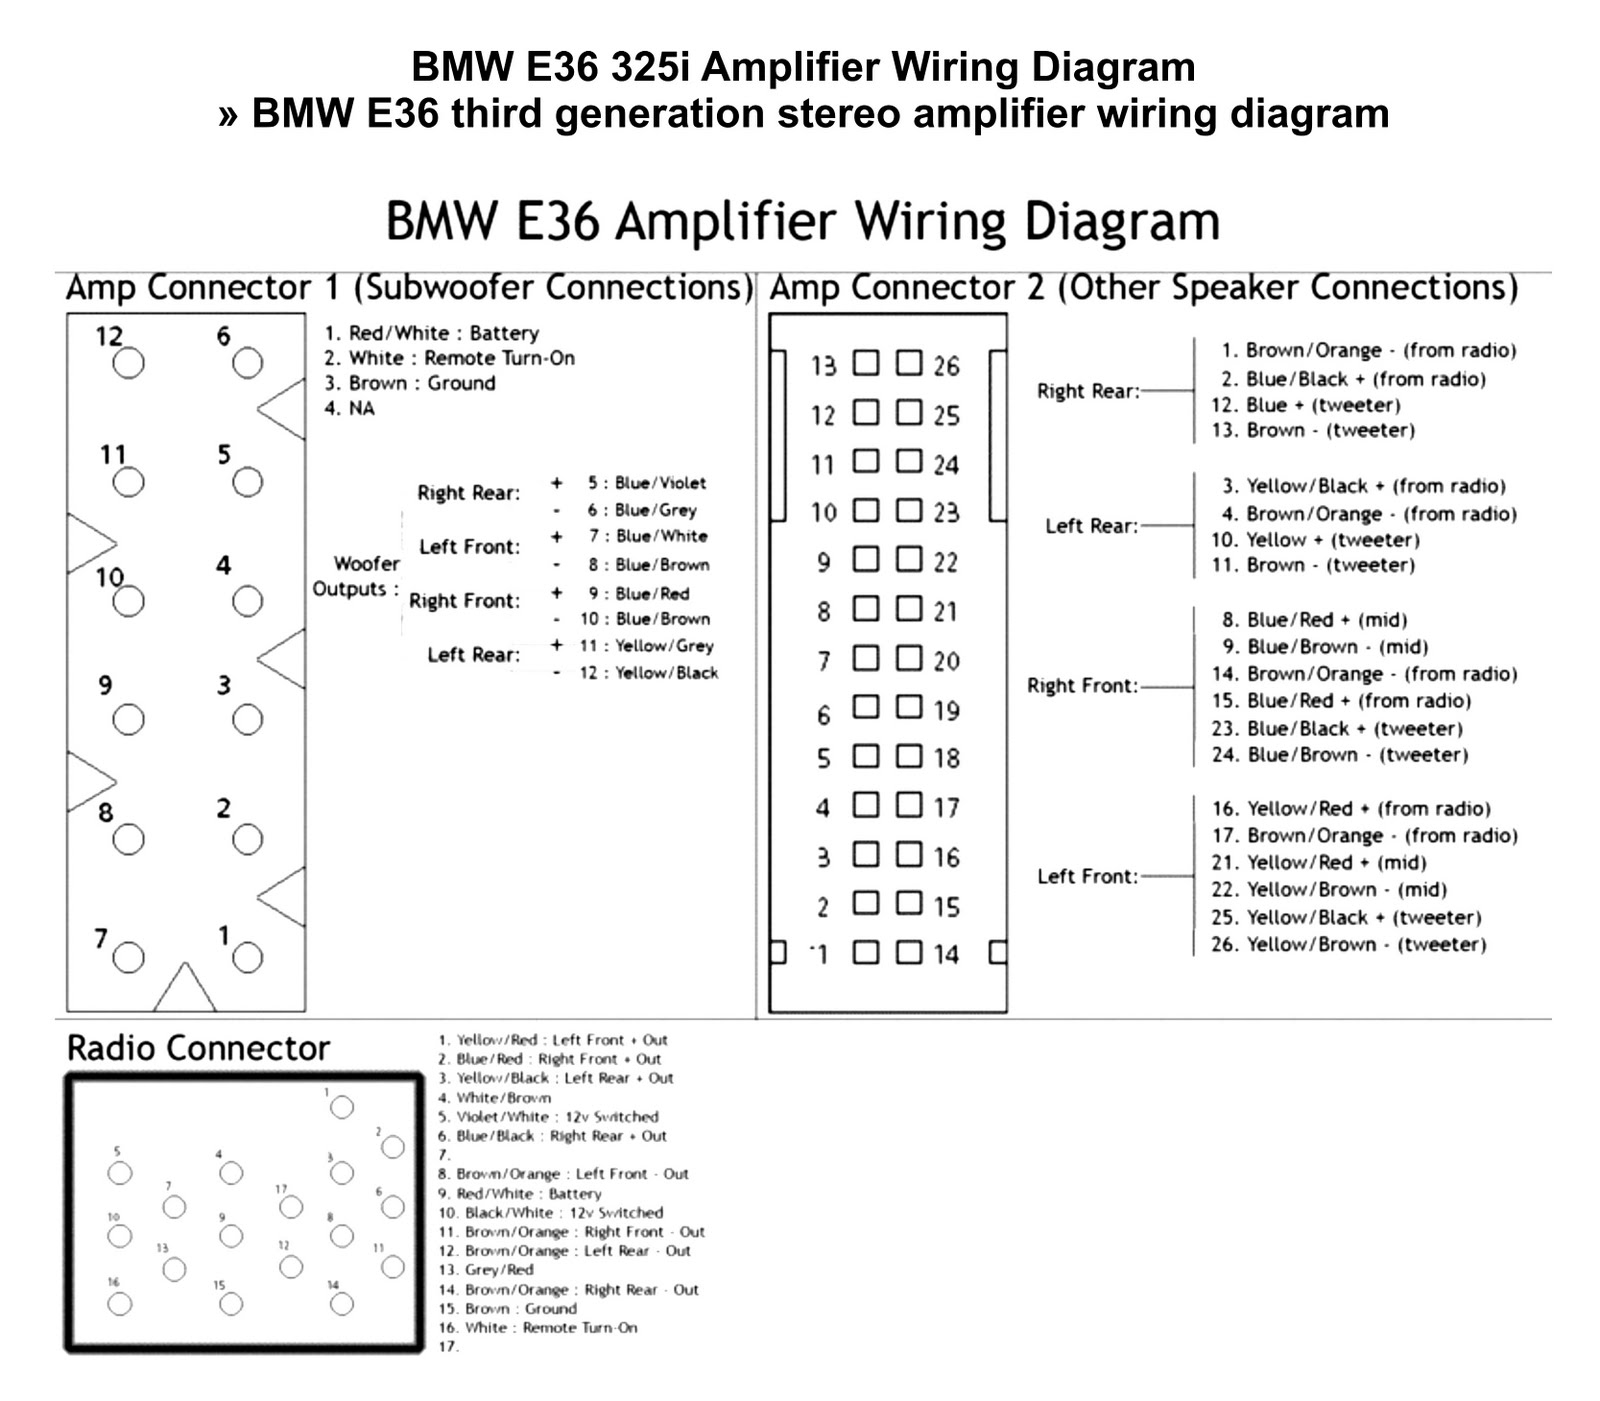 e36 m43 wiring diagram in payroll erd, Wiring diagram